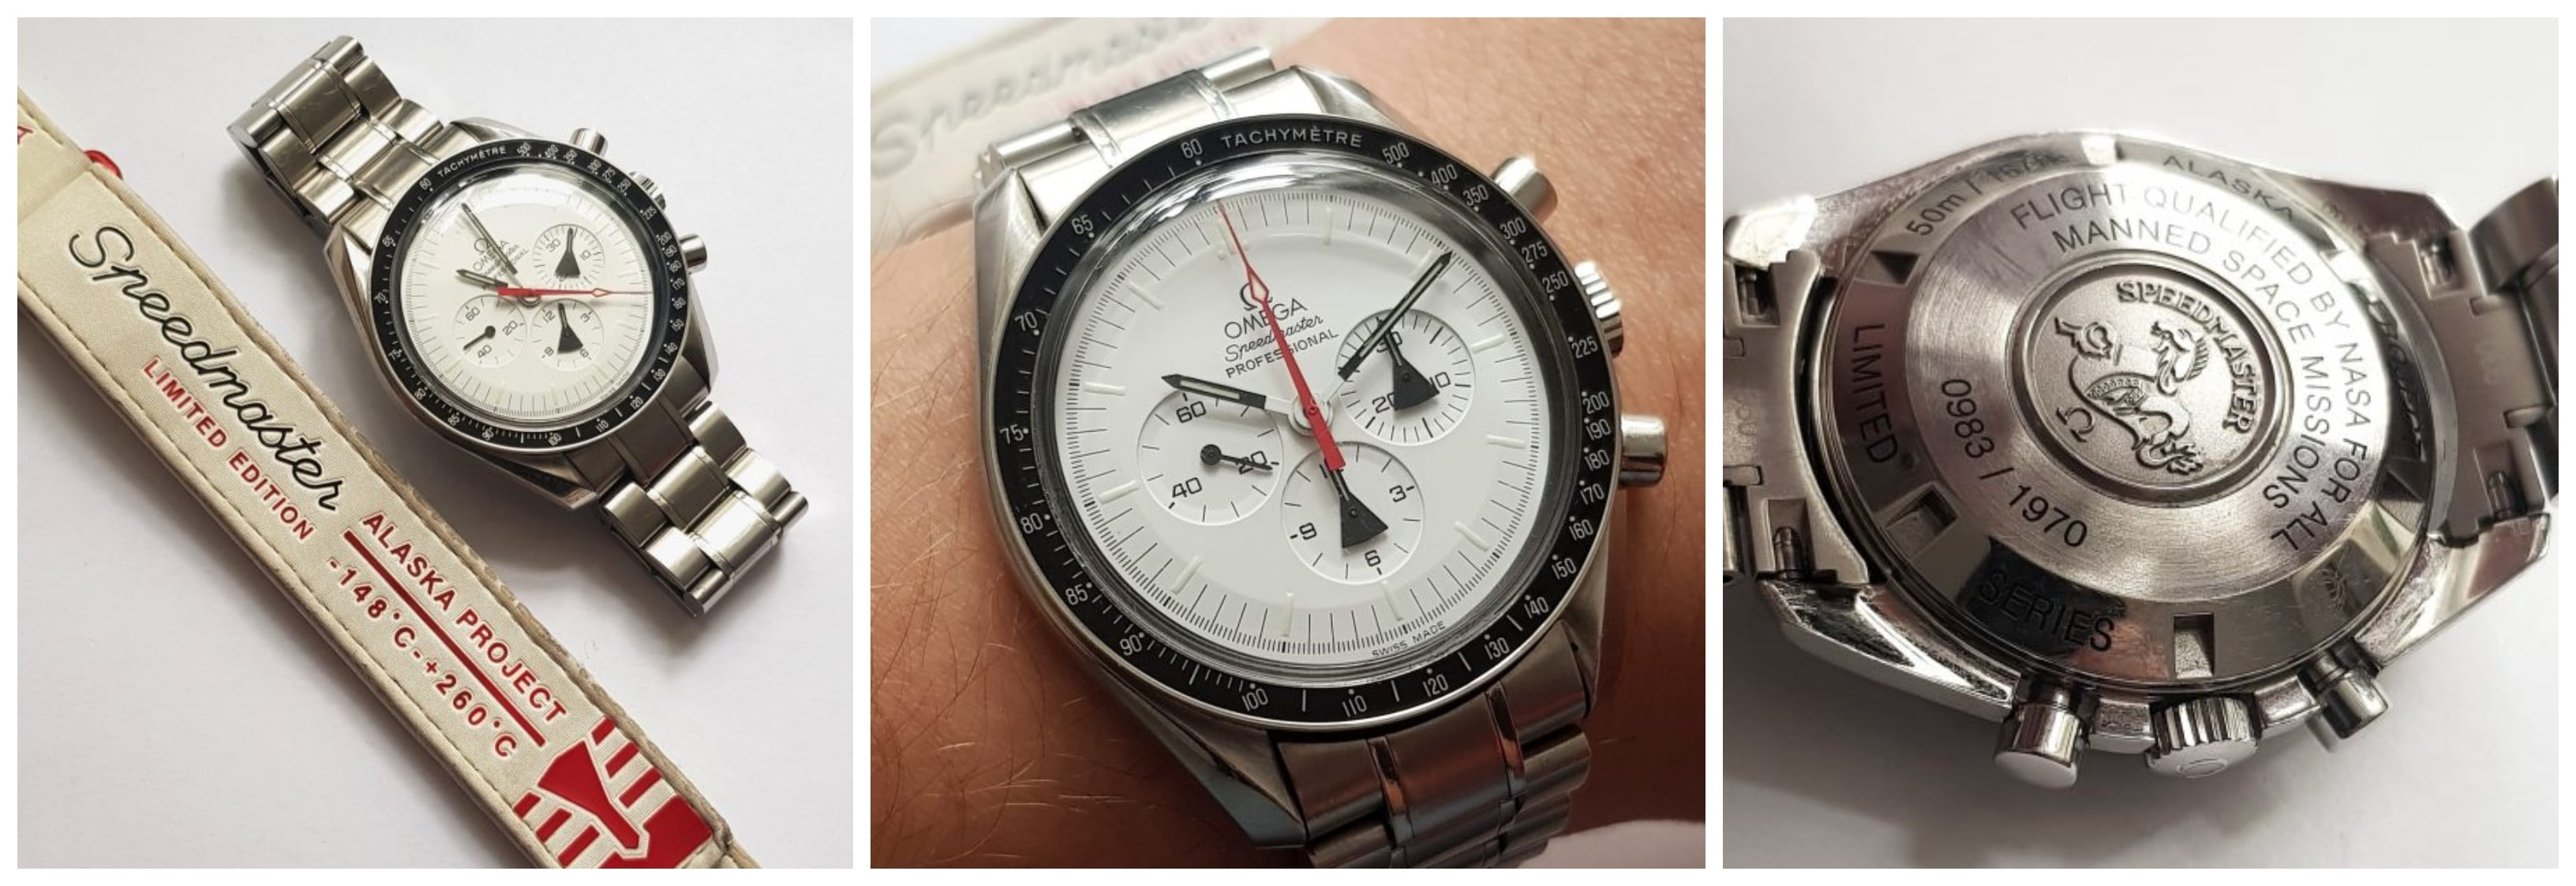 The Legendary Omega Speedmaster